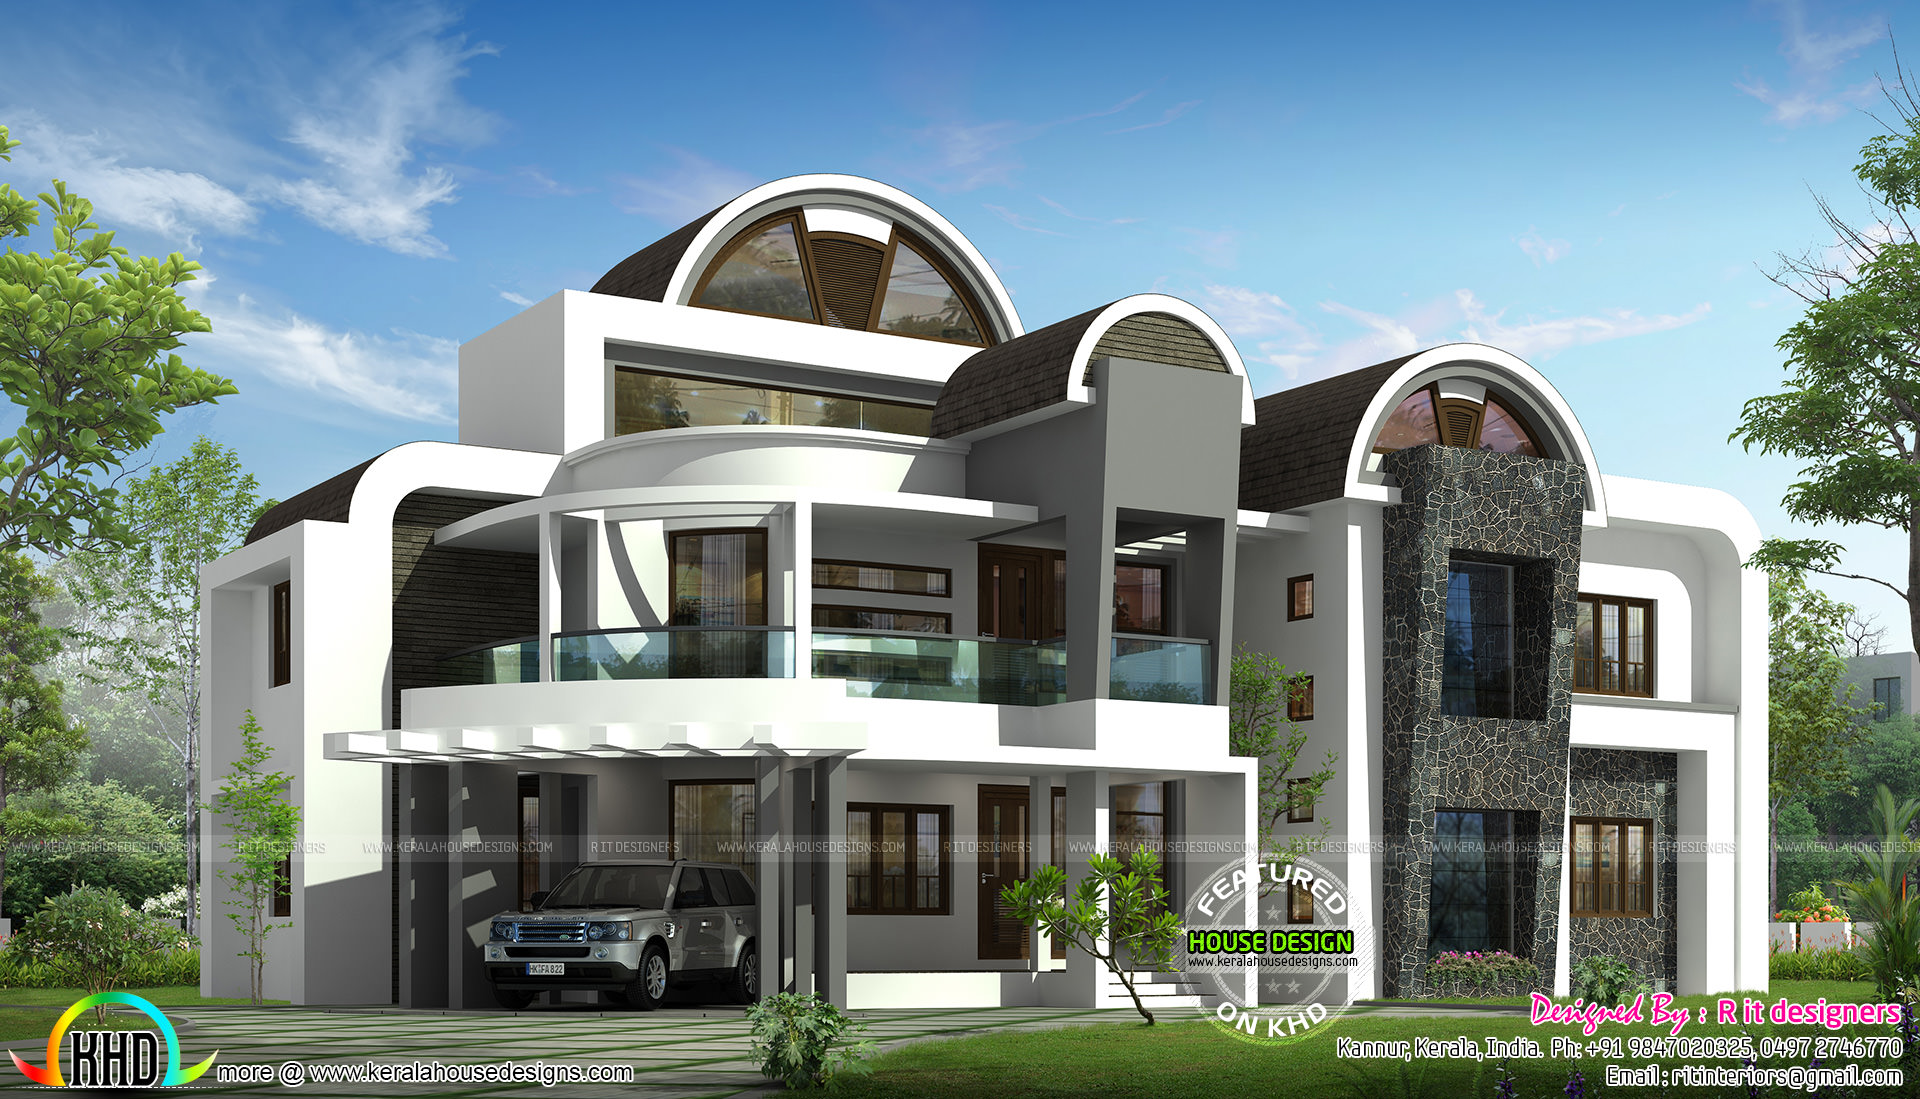 Half round roof unique house design home design decor for Interesting house designs